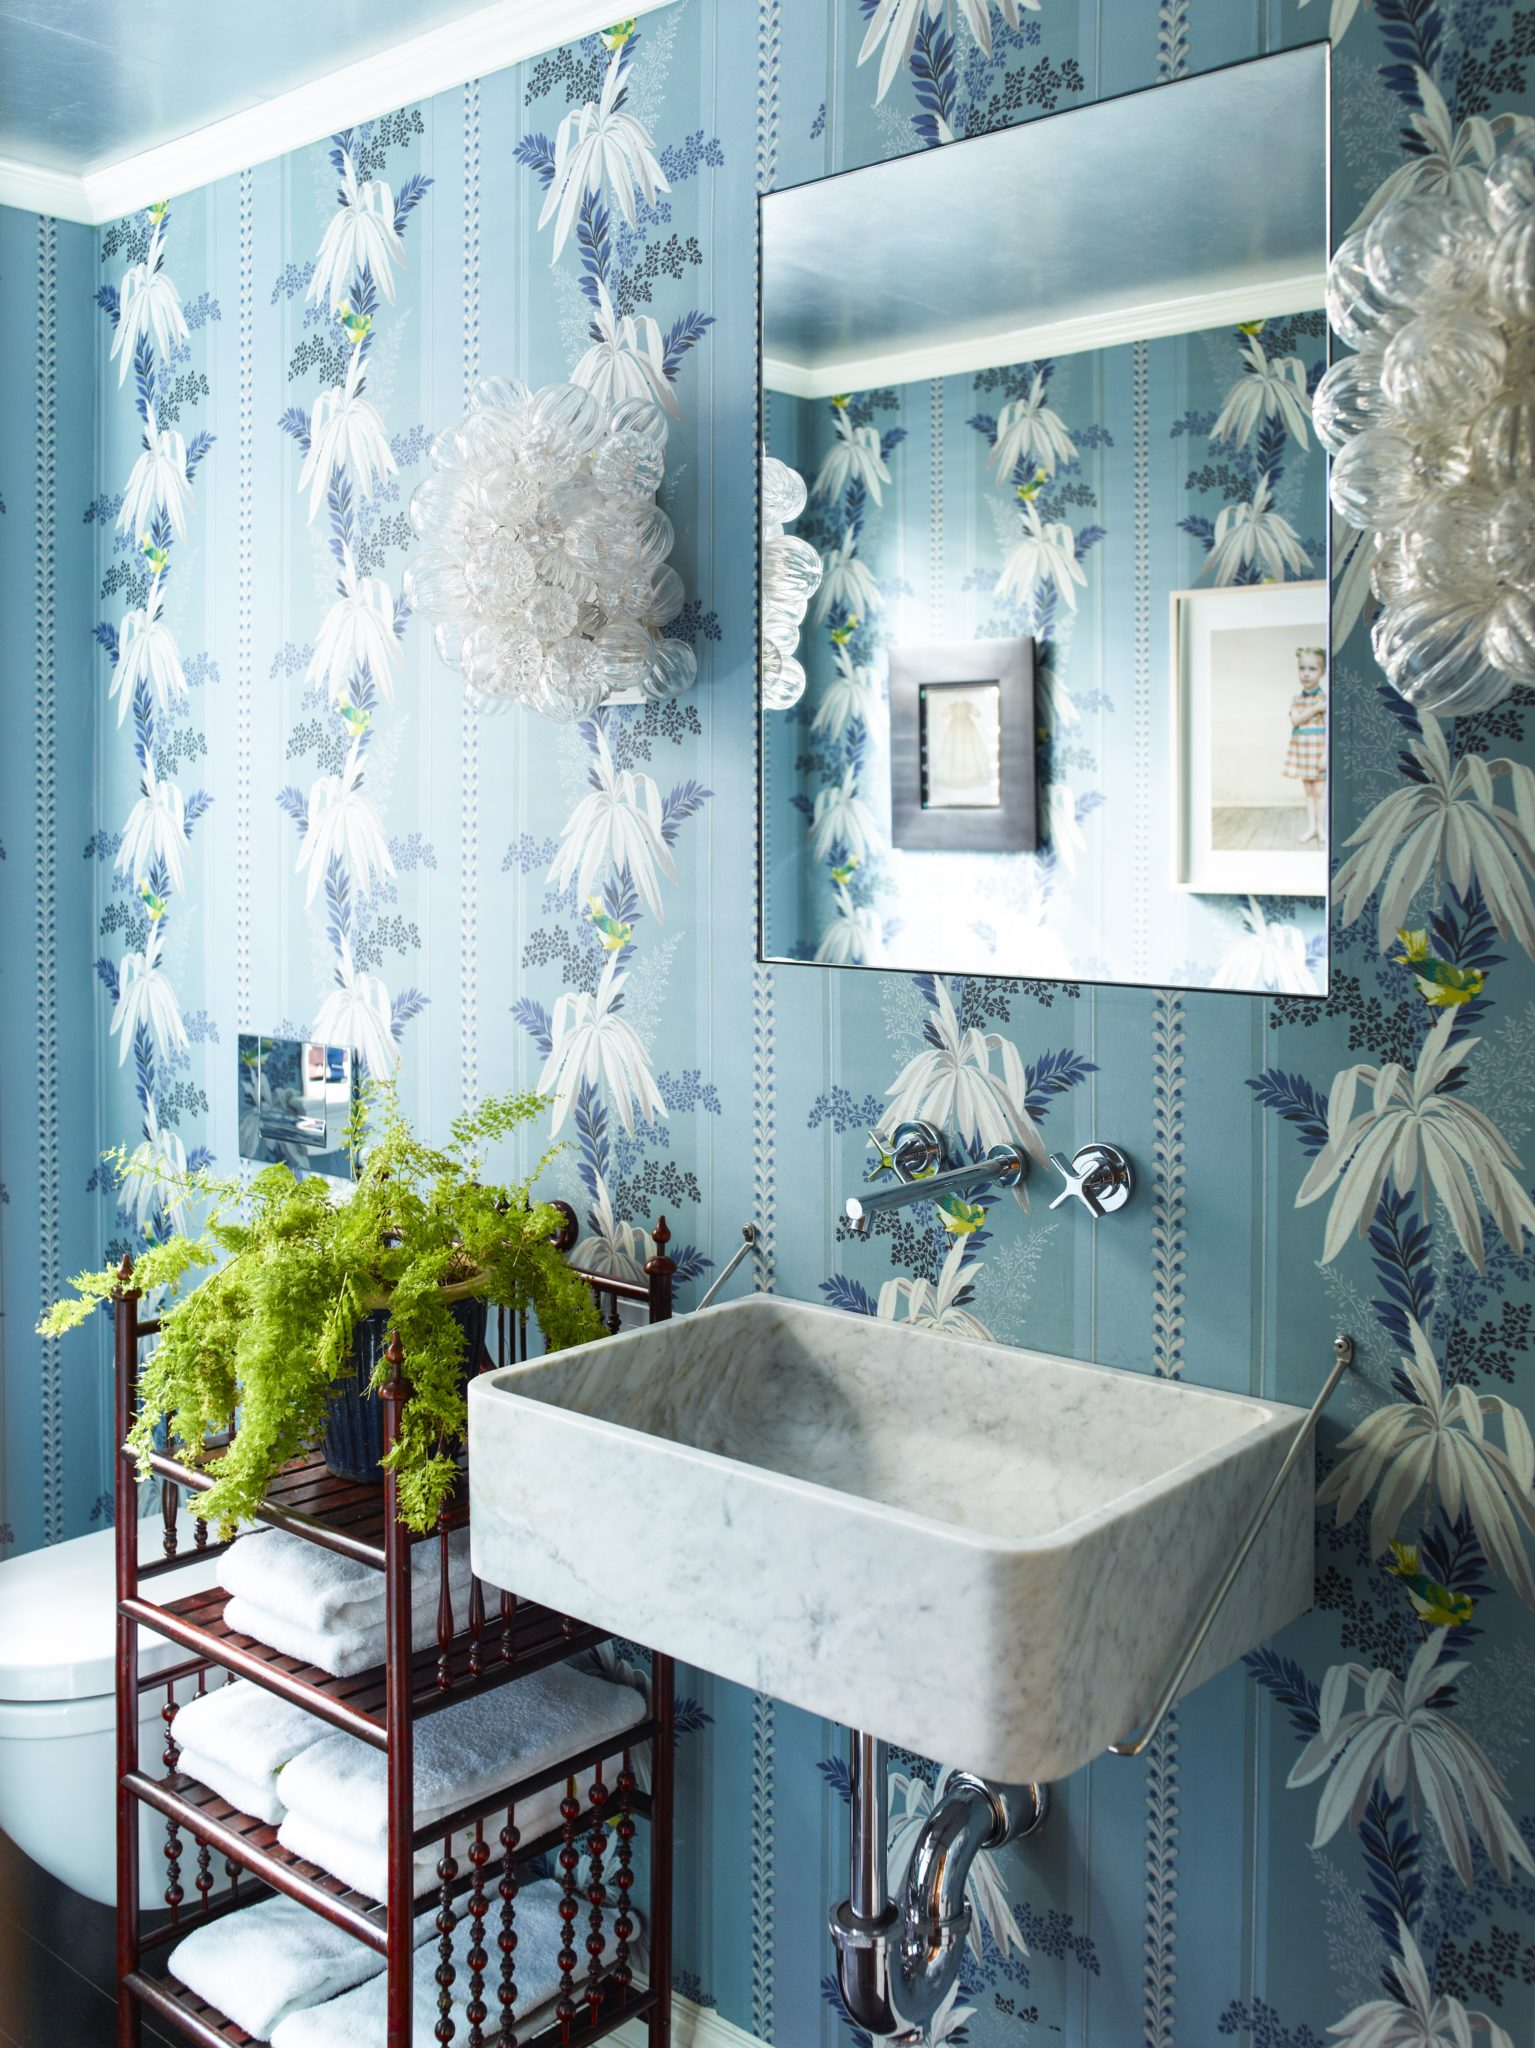 Powder room with blue, floral wallpaper by Katie Ridder Inc.